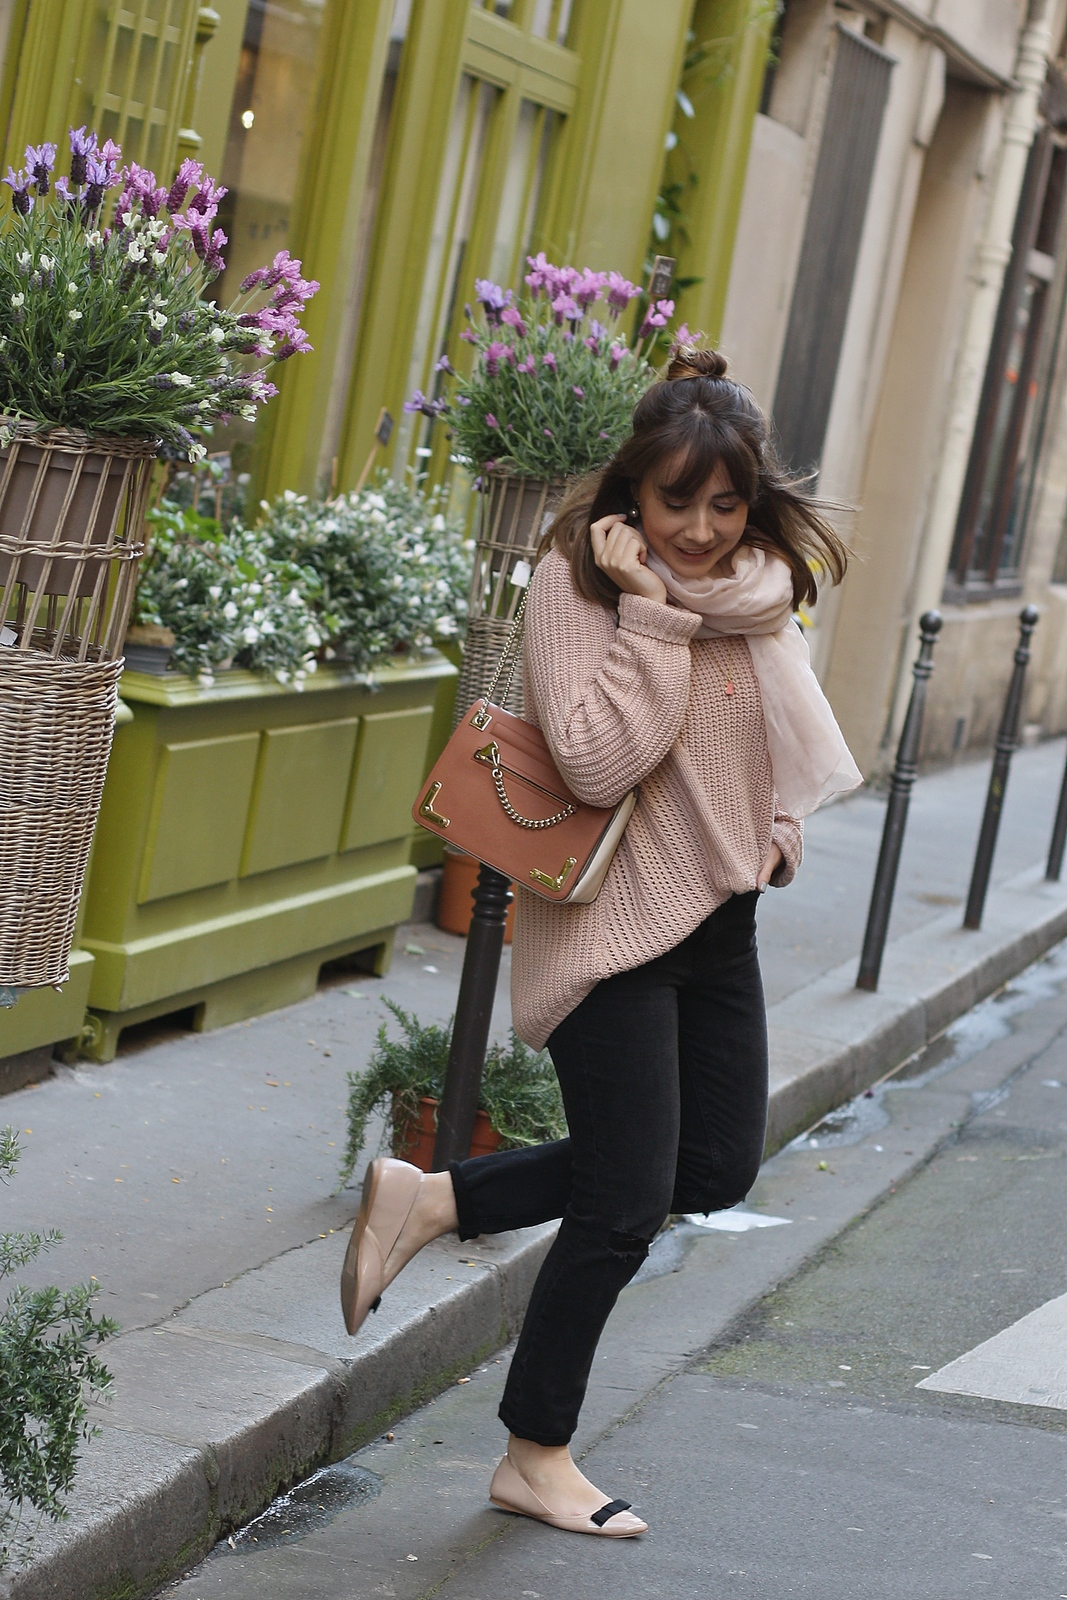 Blog mode femme Paris - Du style, Madame - Streetstyle - look - nude - spring